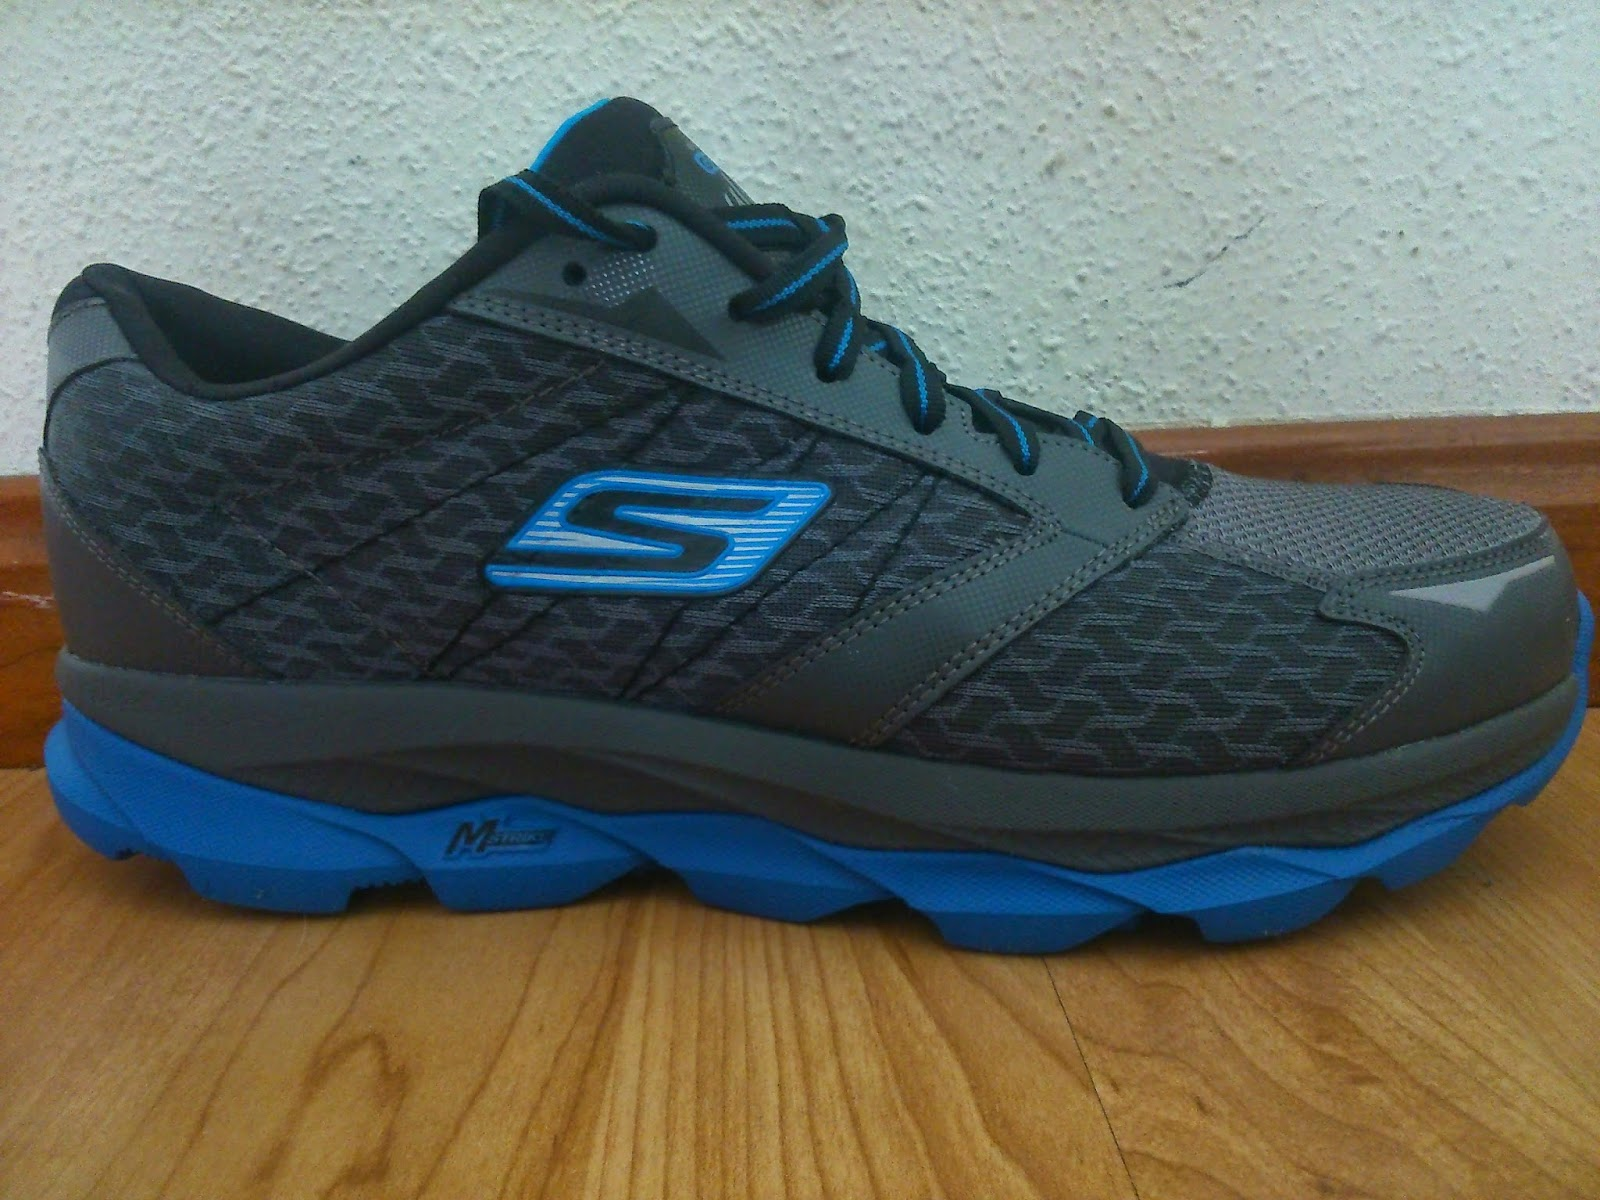 skechers gorun ultra running